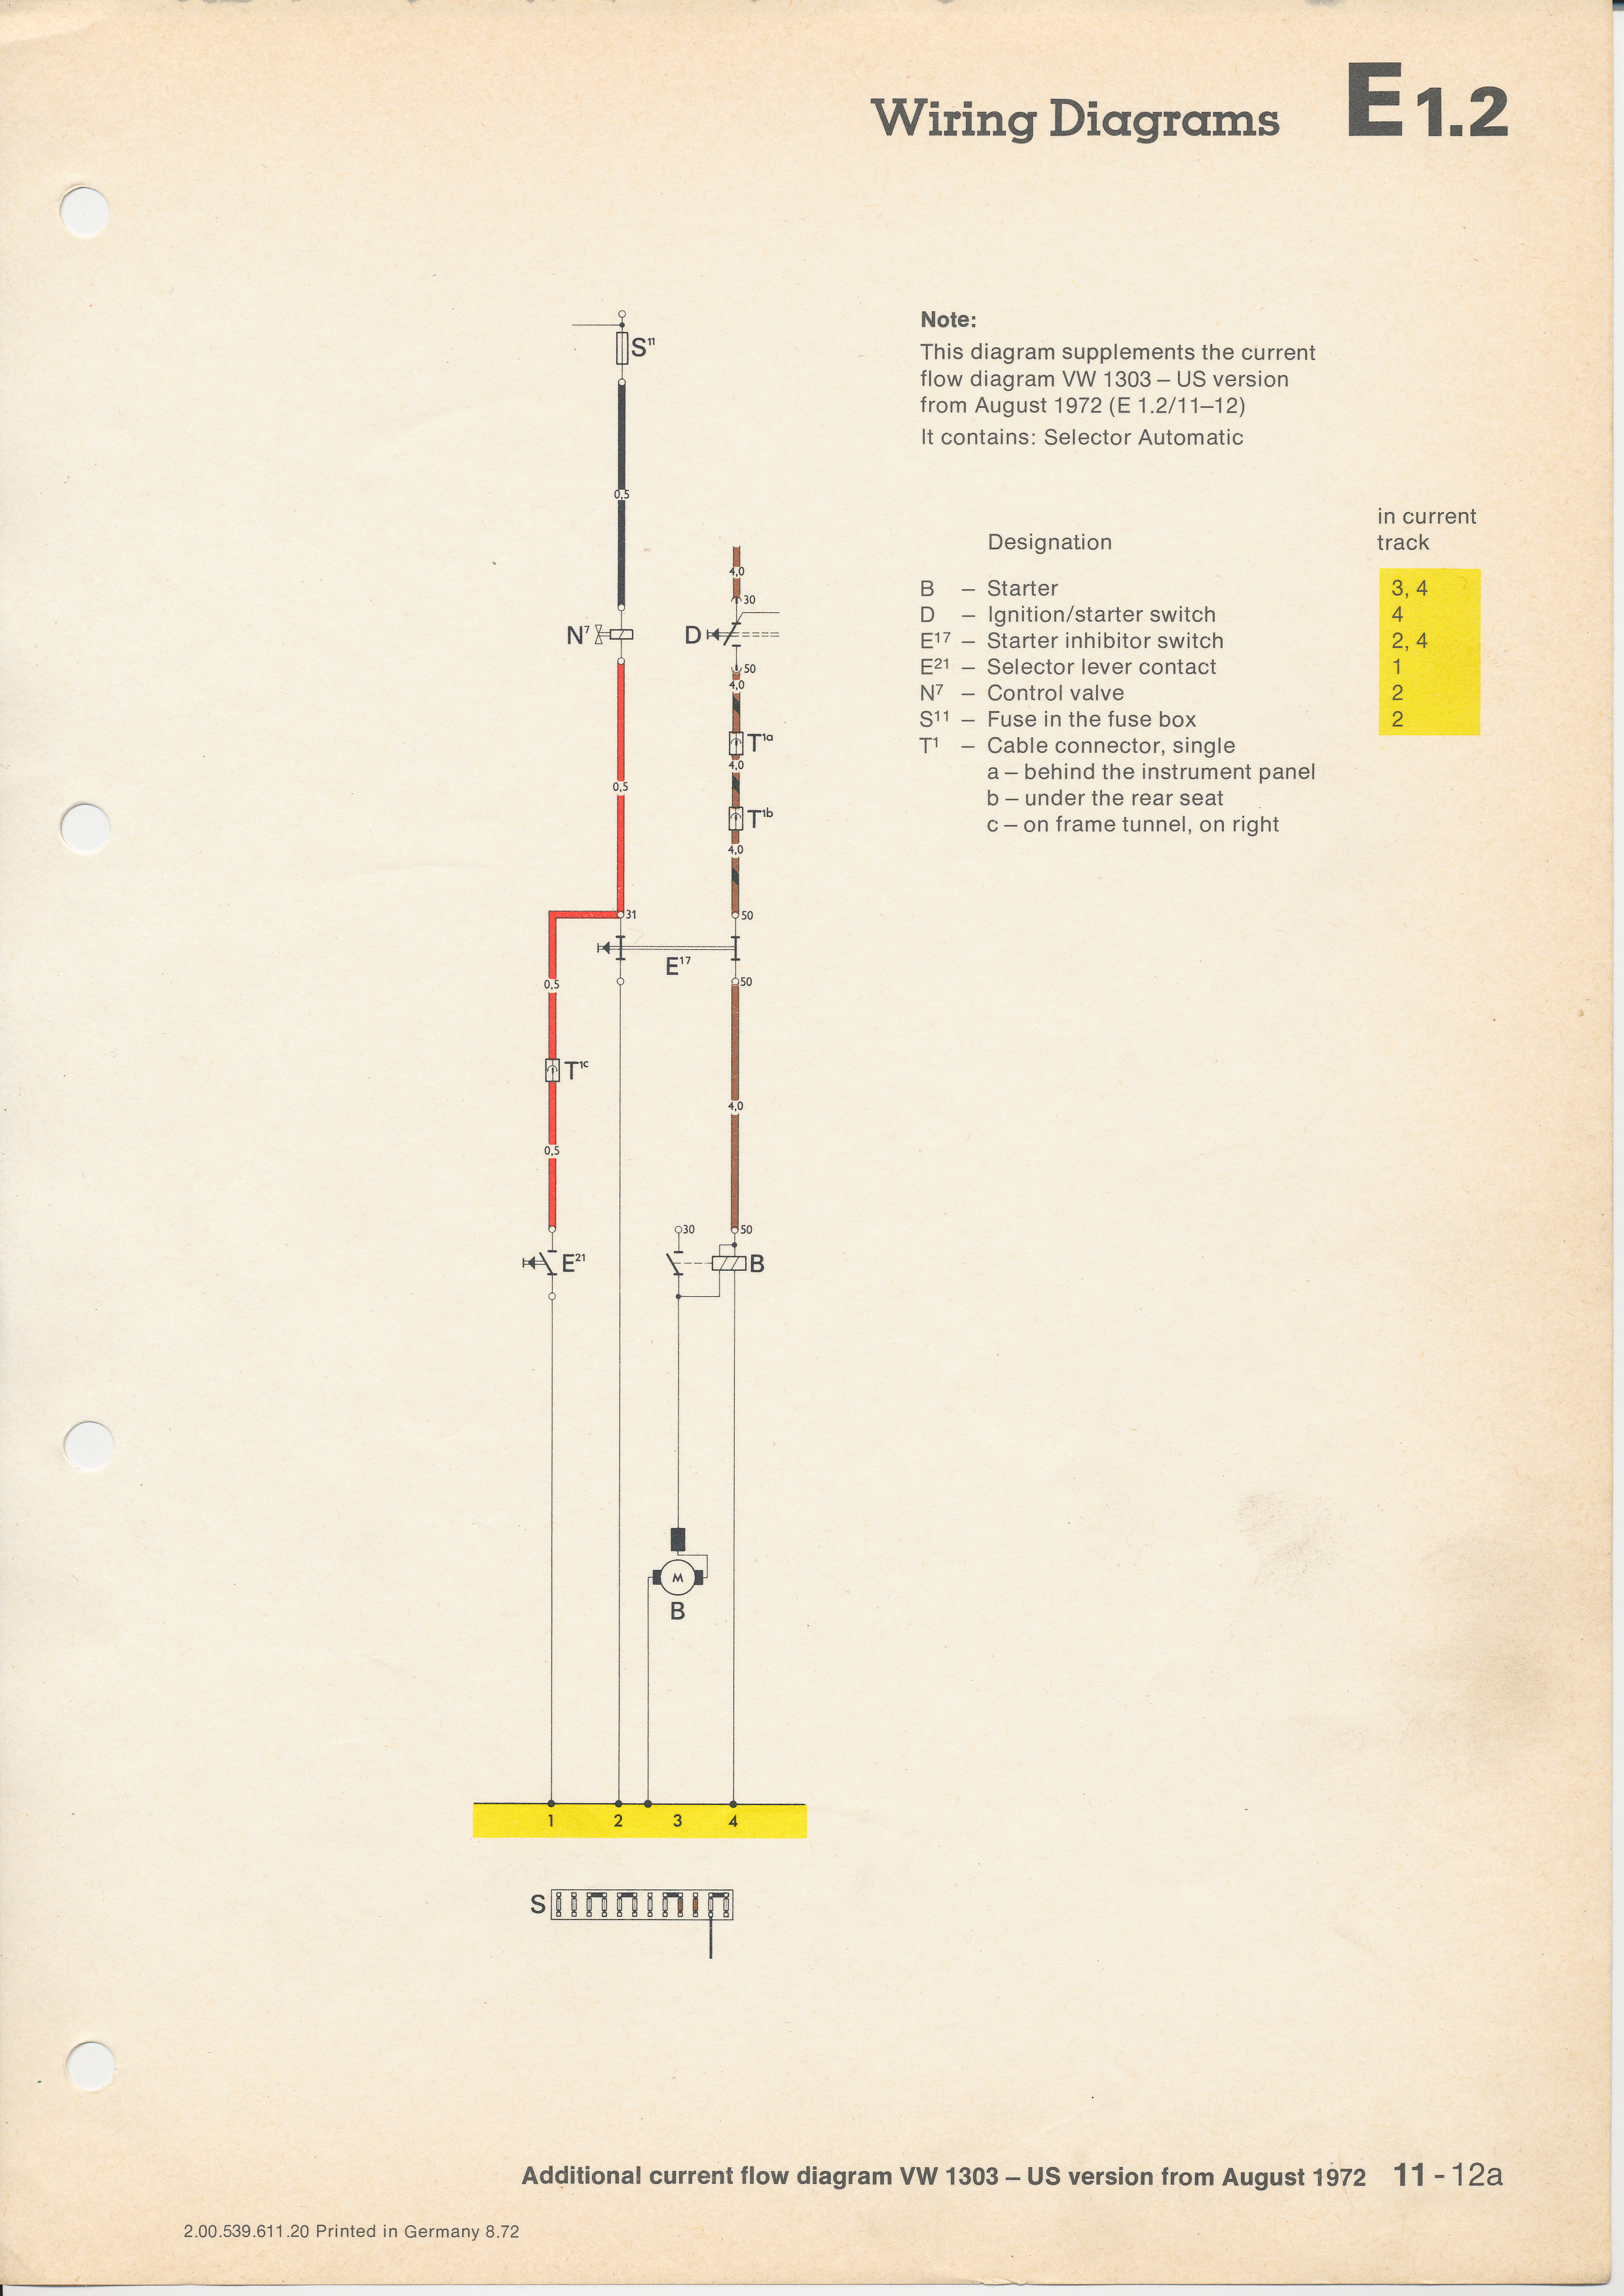 diagram of fuse box wiring for 1968 vw